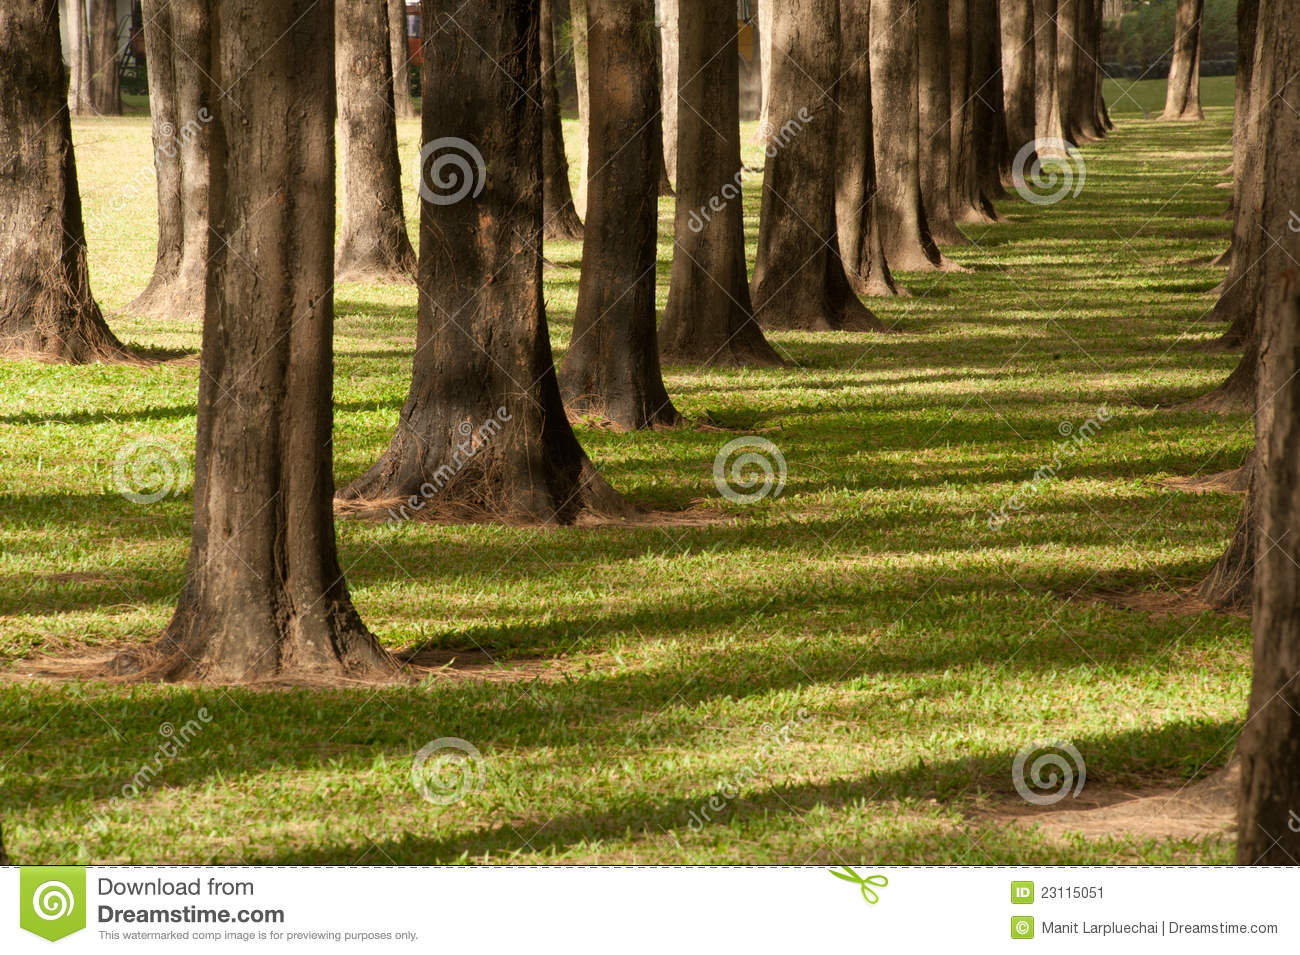 A pine tree garden . stock image. Image of stick, backcloth - 23115051